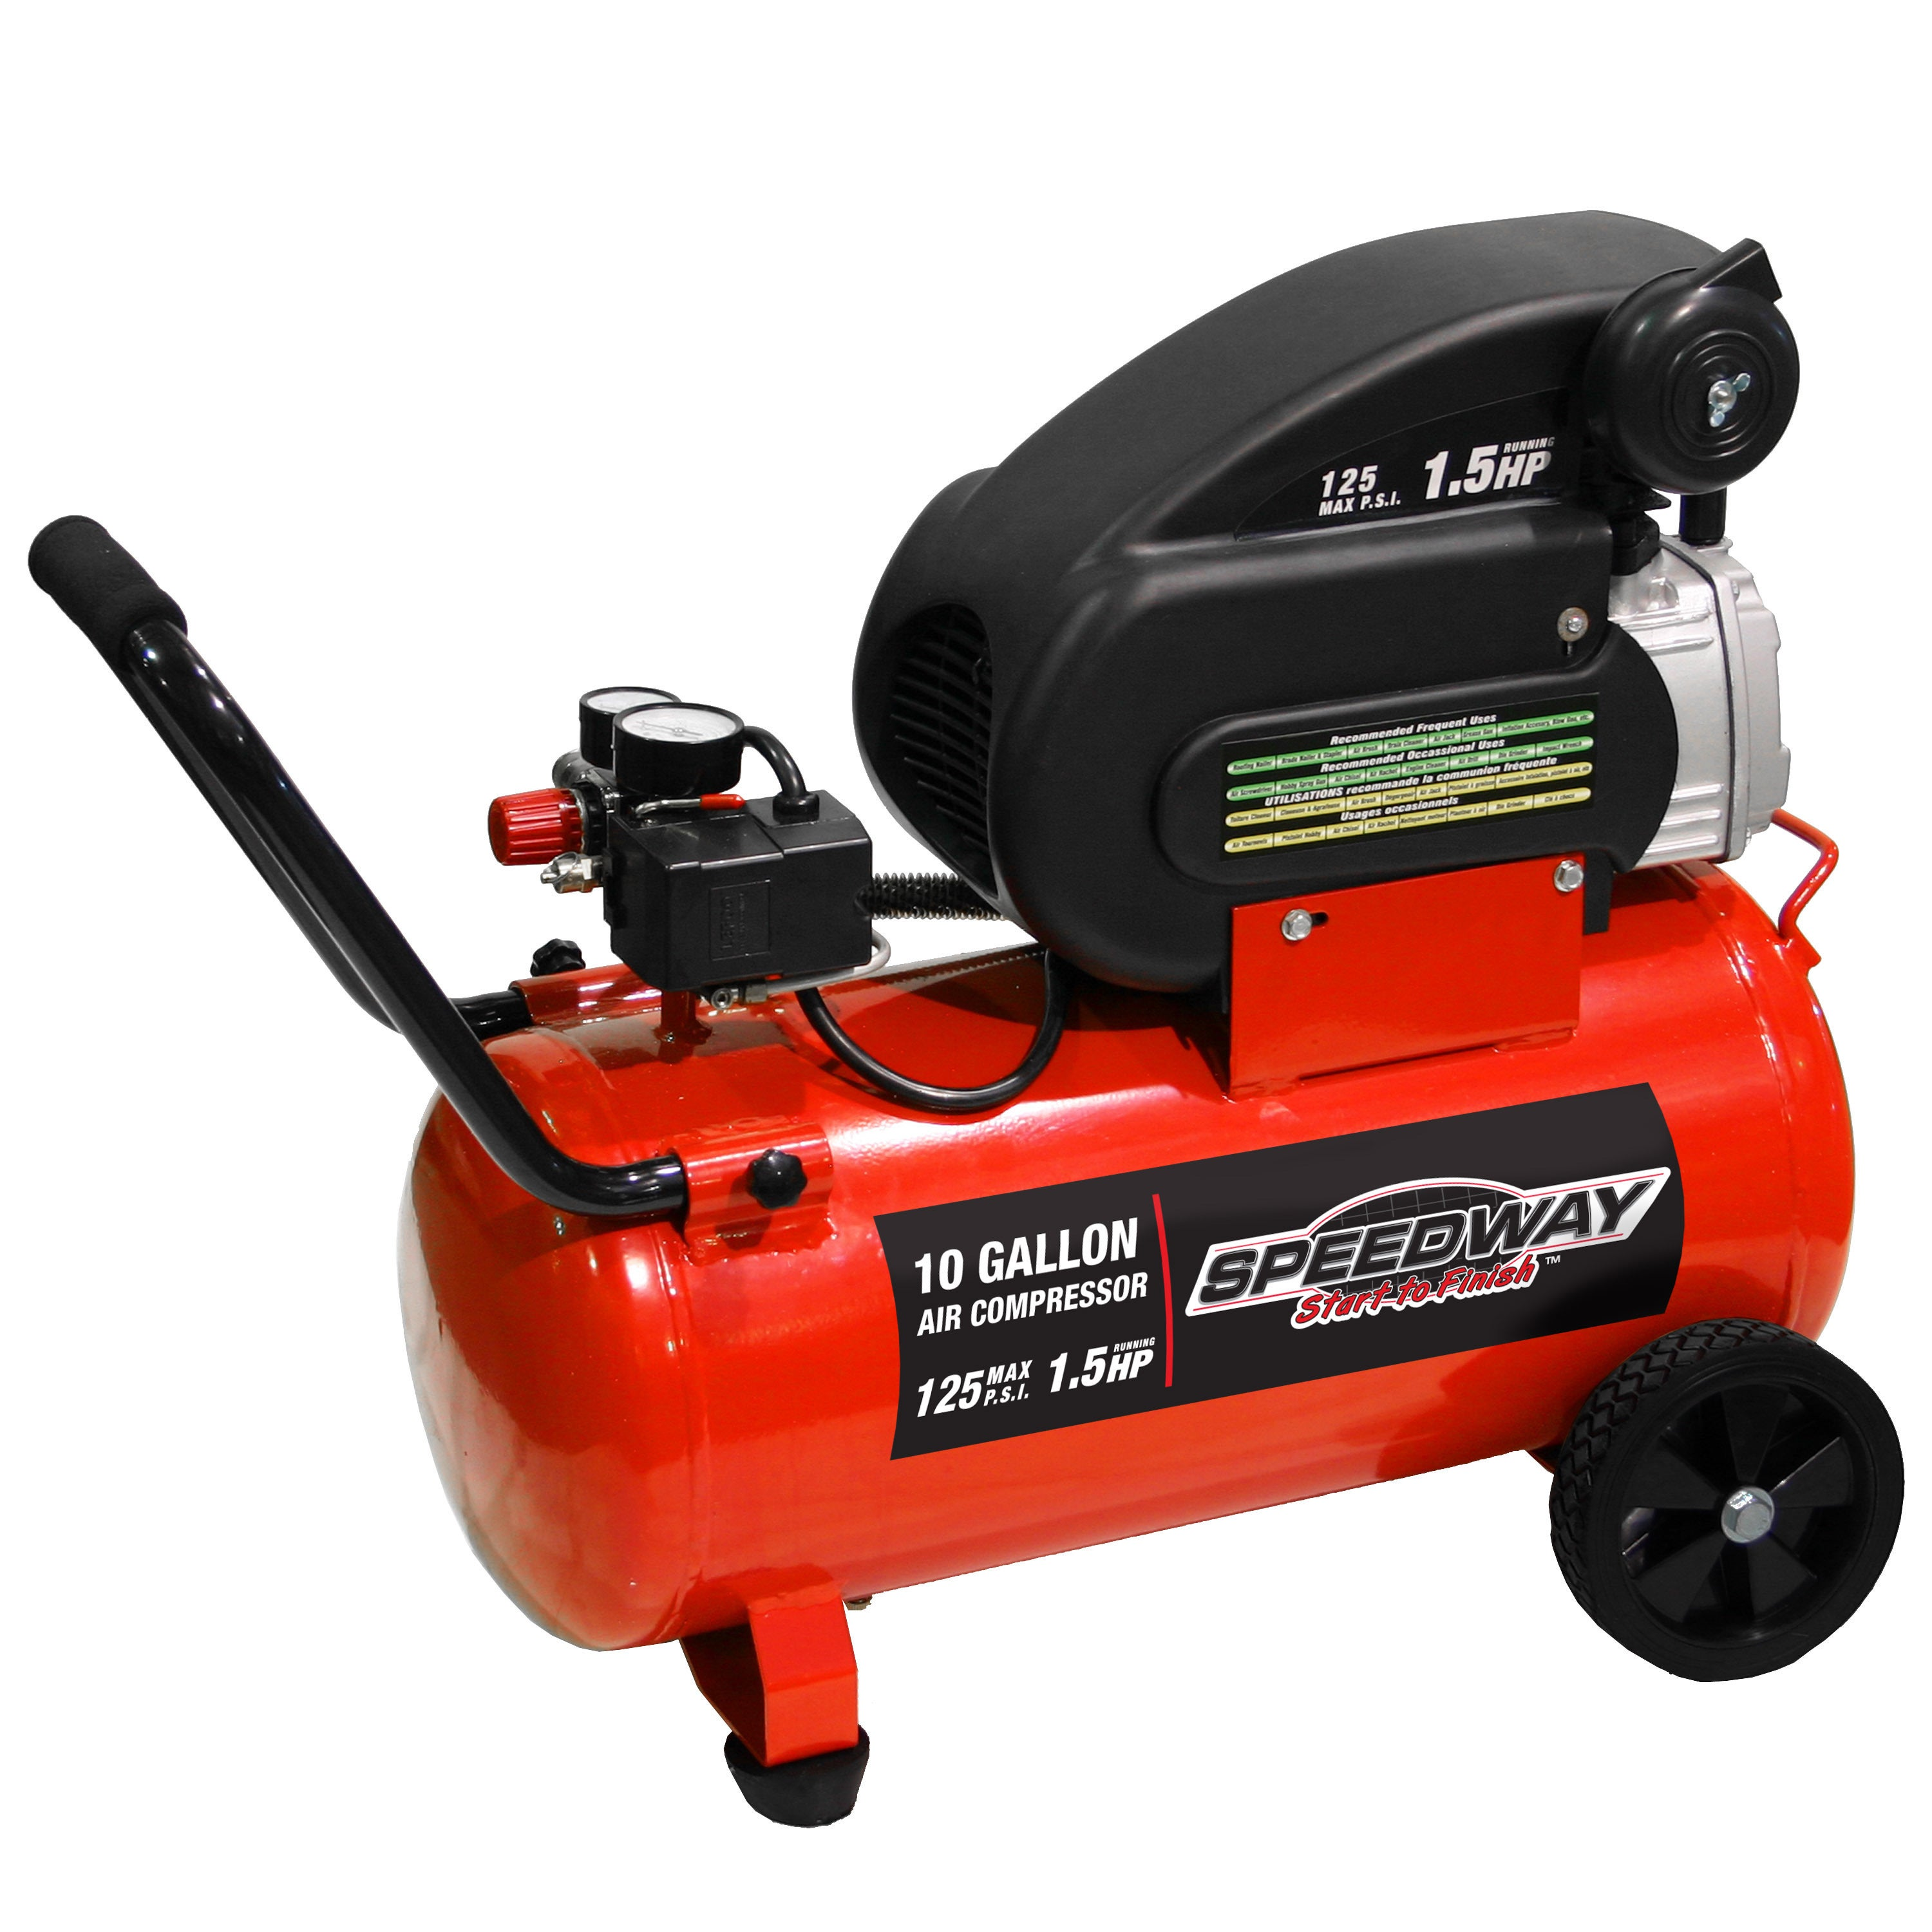 Shop S Dway 10 Gallon Air Compressor With Pneumatic Tires Free Shipping Today Overstock Com 10568906